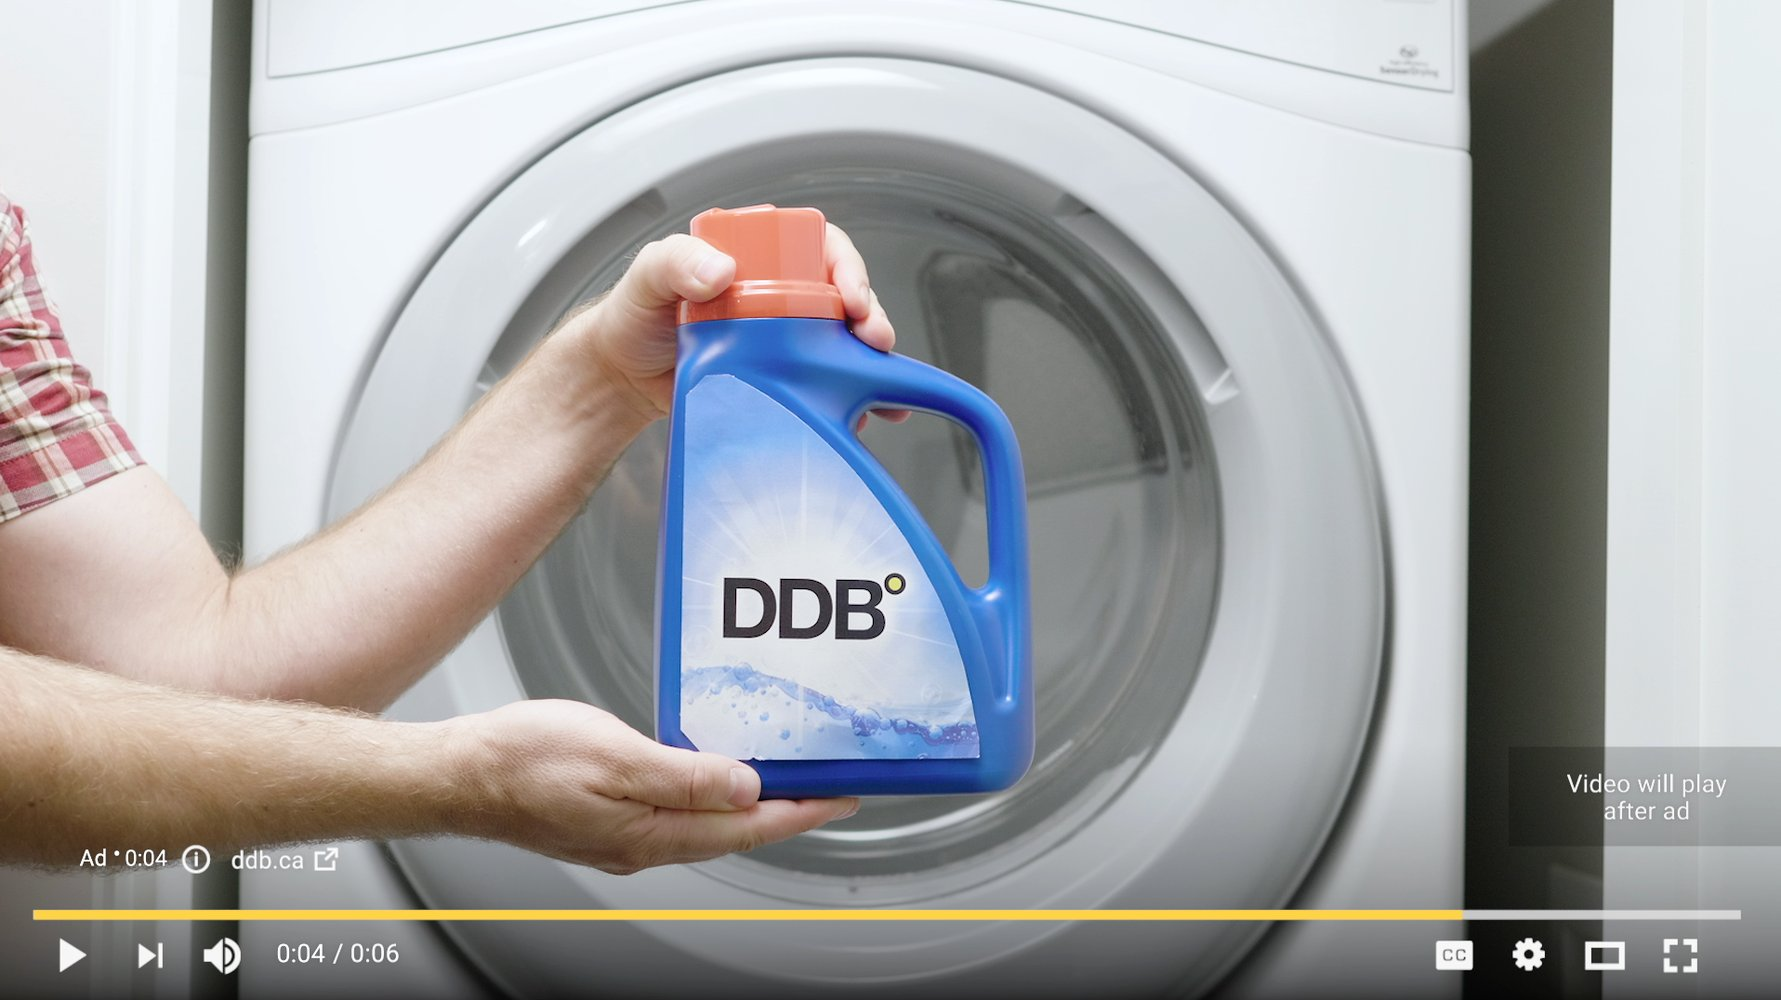 DDB is known for it's magic abilities.